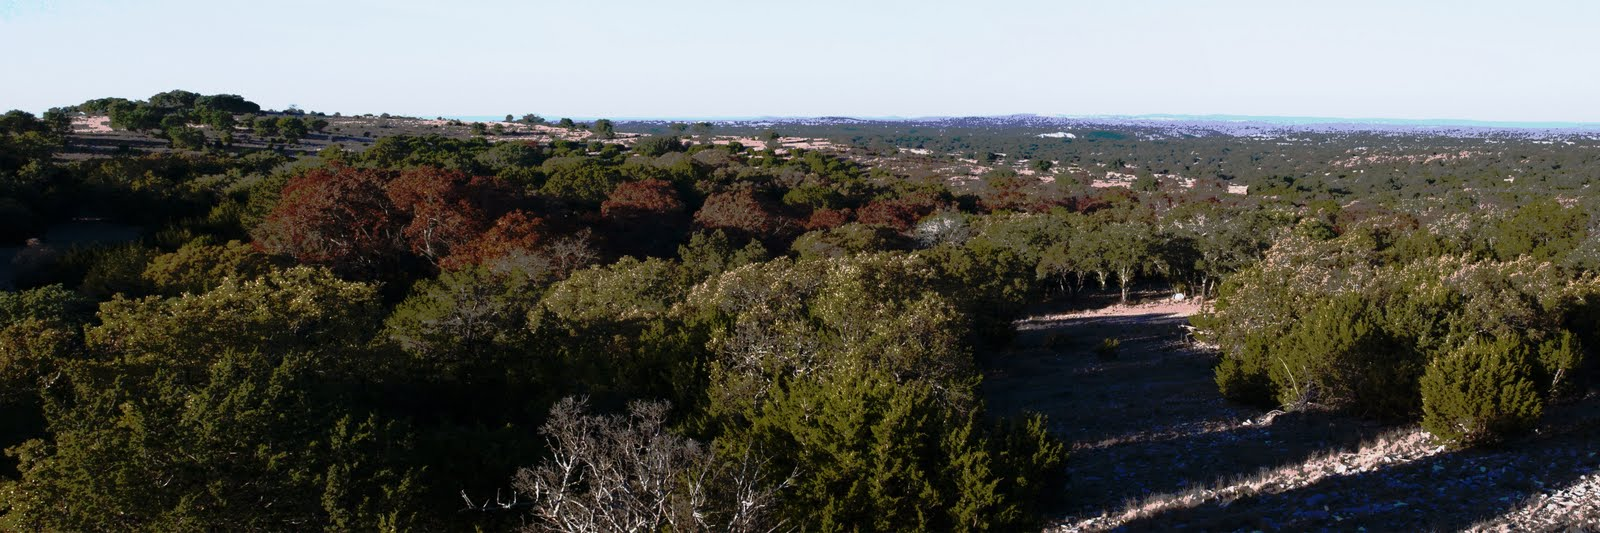 Hill country portal new braunfels texas tx city html for Texas hill country cottages for sale